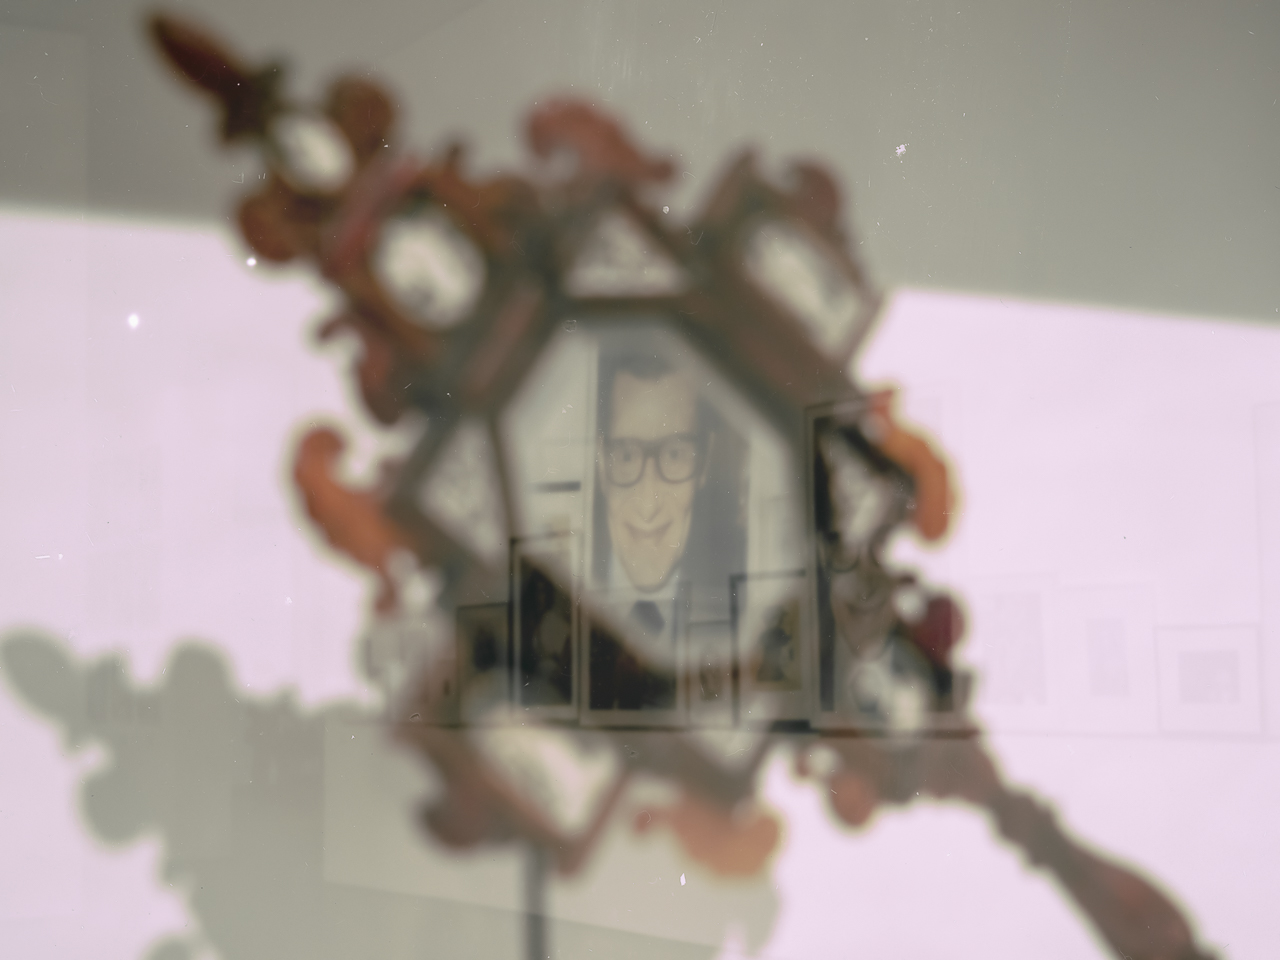 Apparition of Yves. Photography by Juergen Teller (Yves Saint Laurent, 2000) observed through a courtly amber mirror (1650)